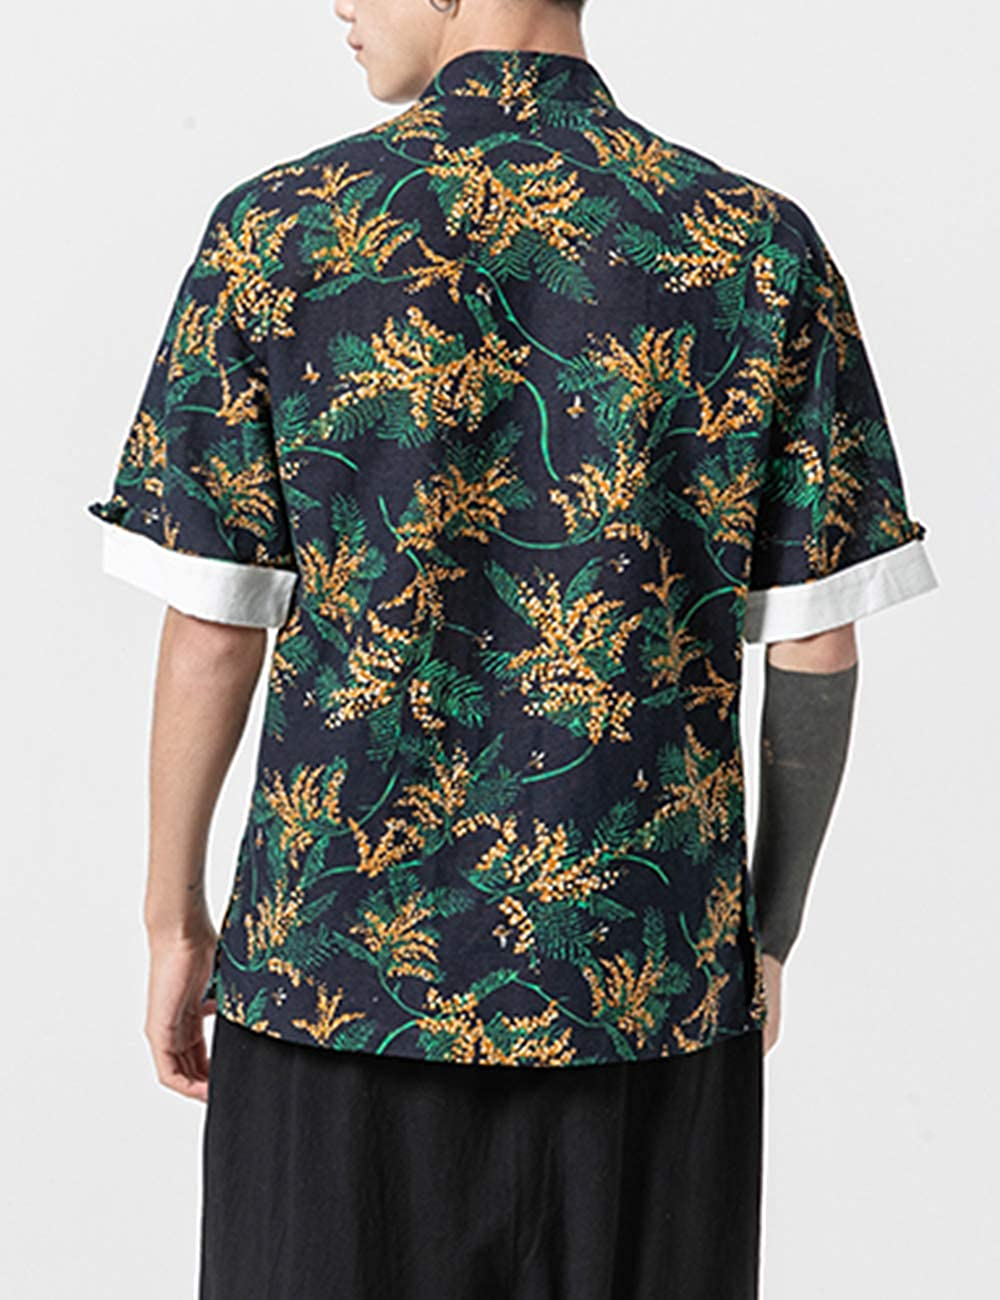 Zhhlinyuan Chinese Style Mens Short Sleeve Shirts Casual Stand Collar Printed Top